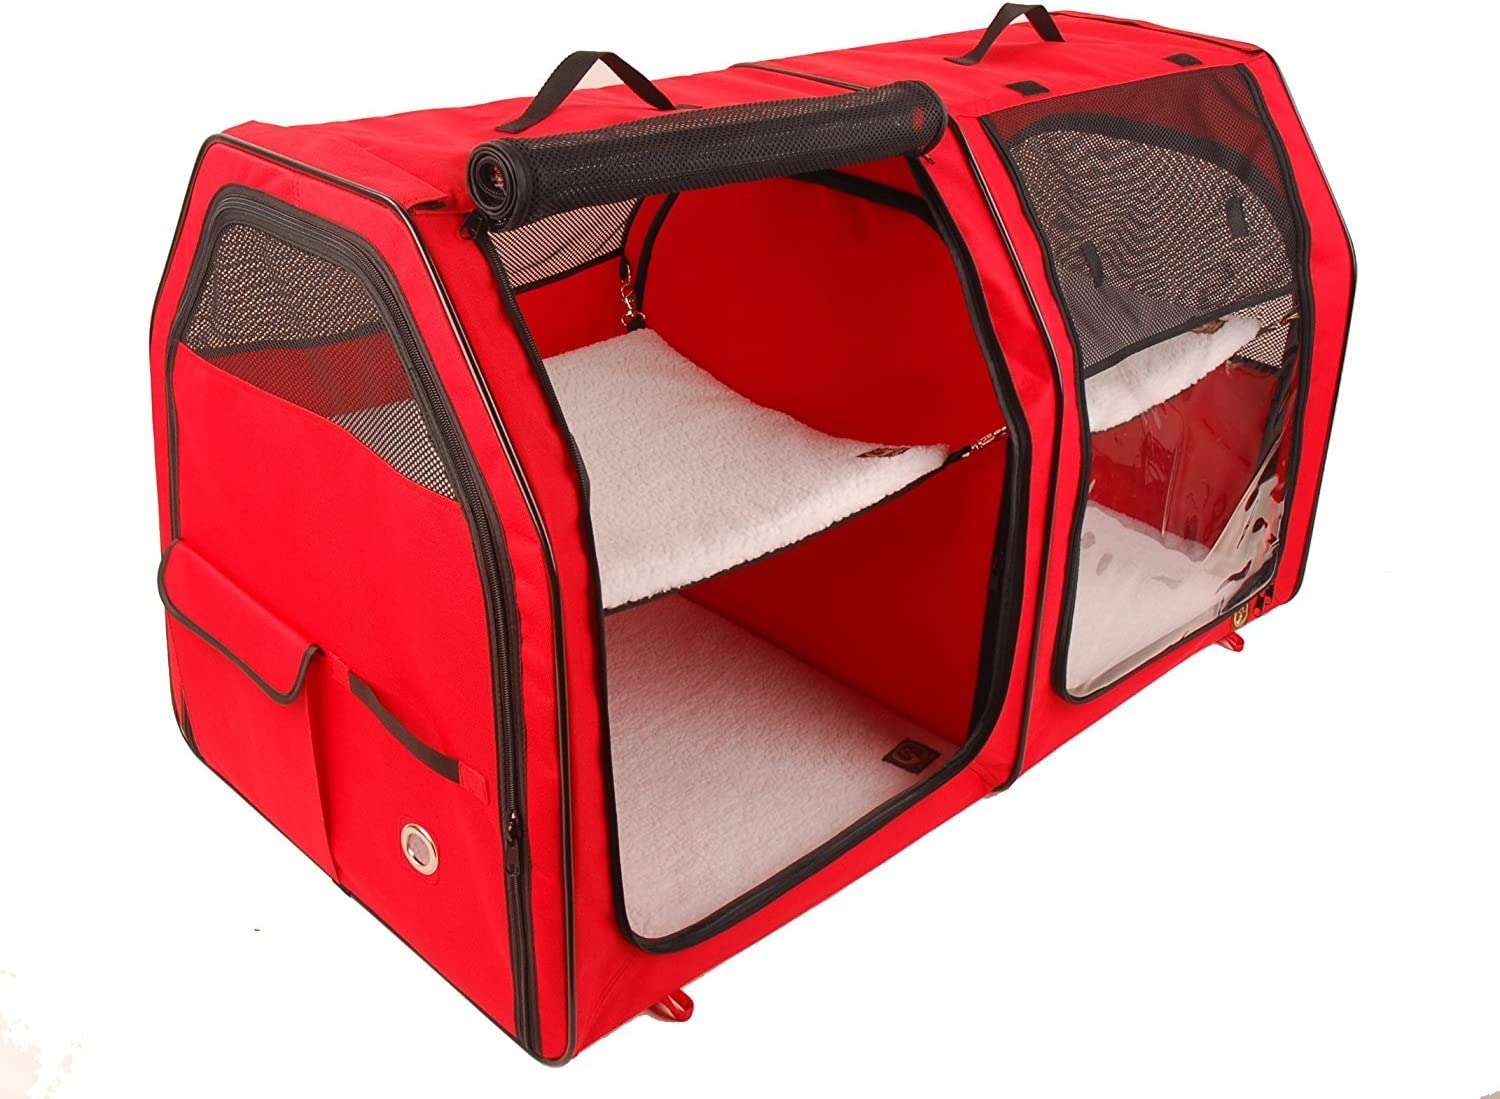 One for Pets Cat Show House Portable Dog Kennel